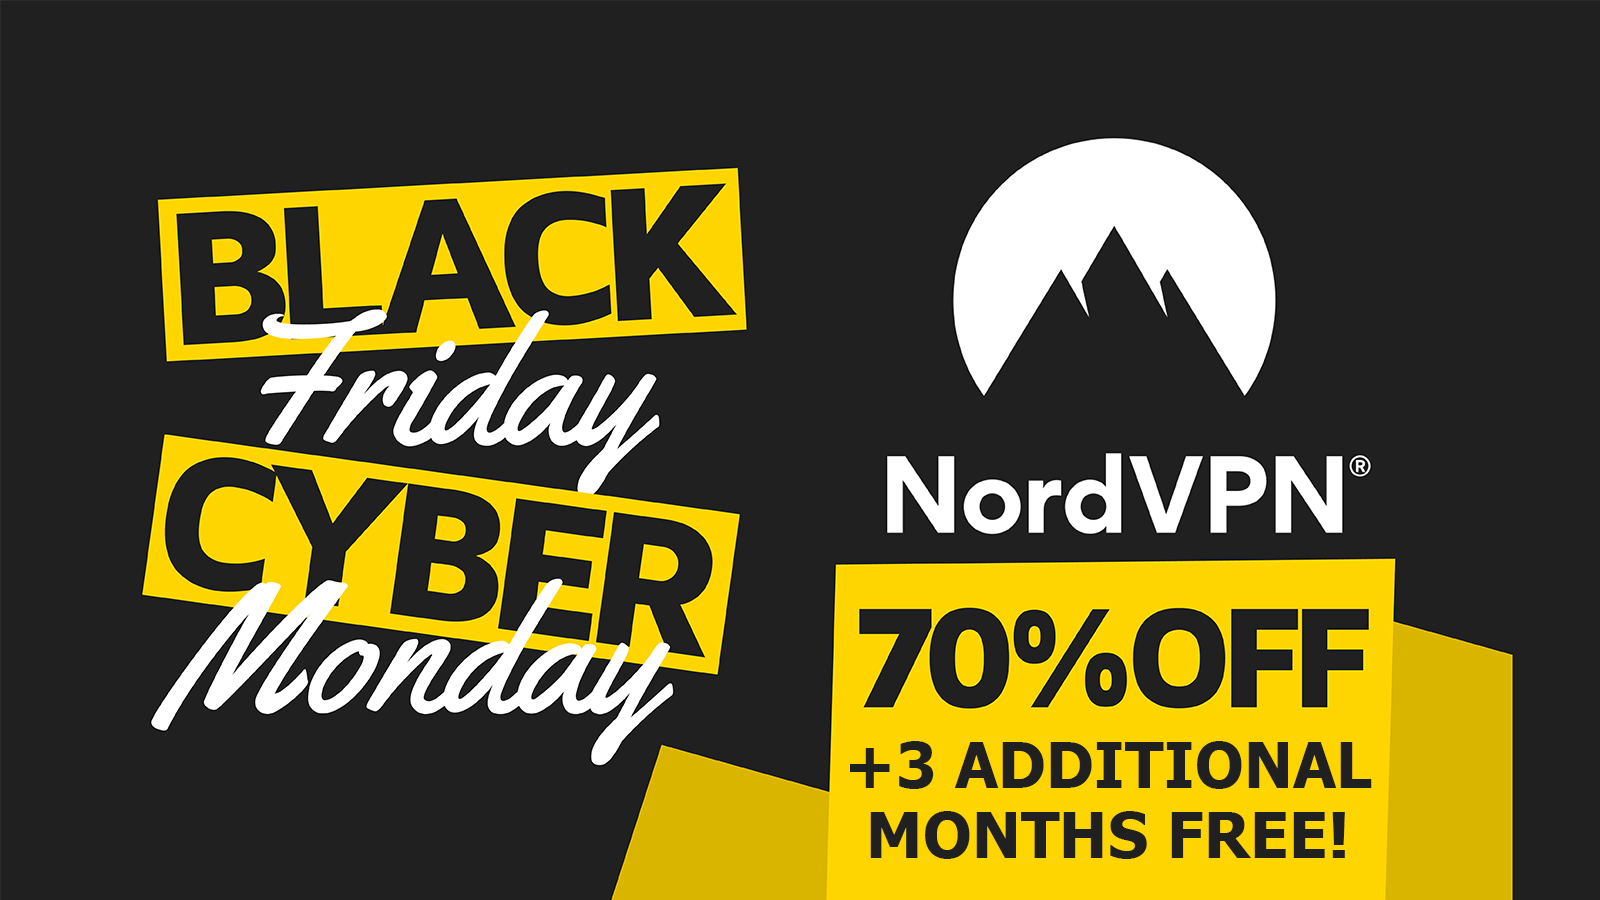 Nordvpn Black Friday Deal 2019 Save 70 Get 3 Months Free